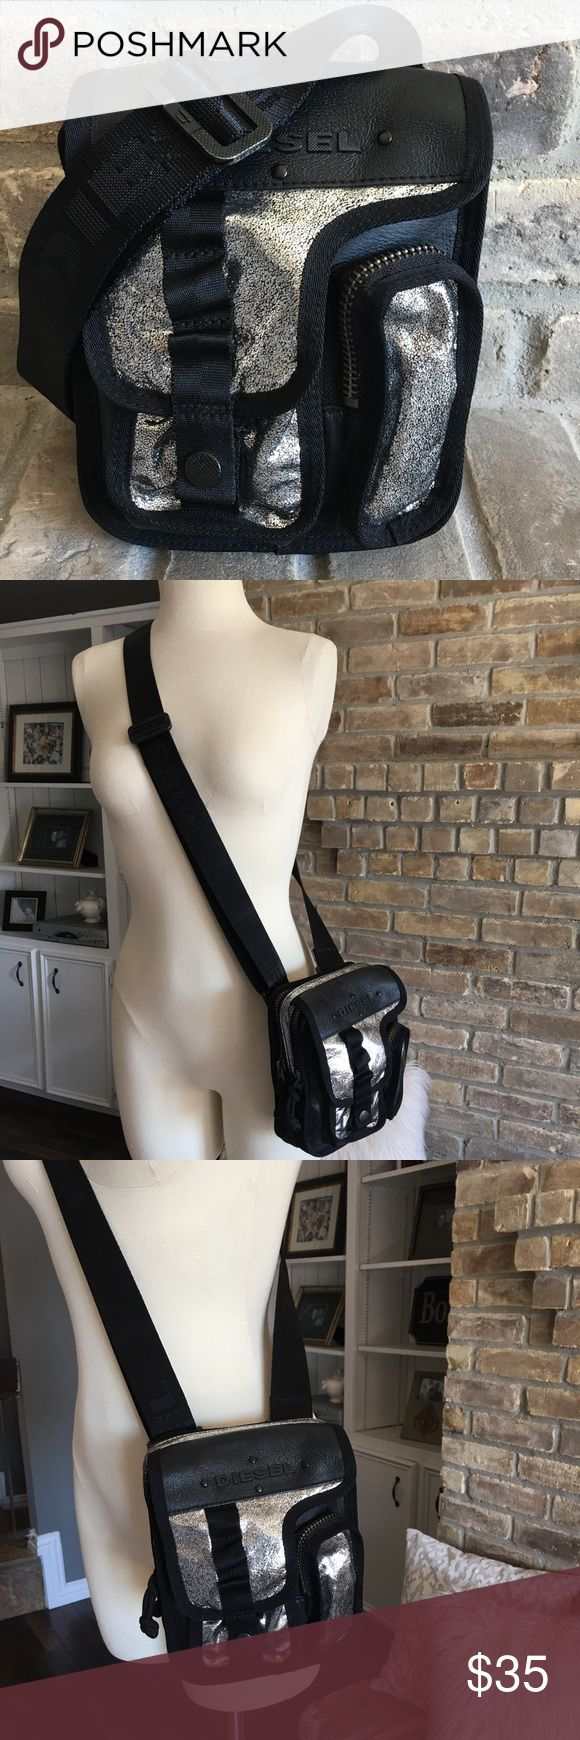 Diesel purse Black and silver side satchel bag. Tons of space and compartments inside! Super cute and a perfect traveling purse. Diesel Bags